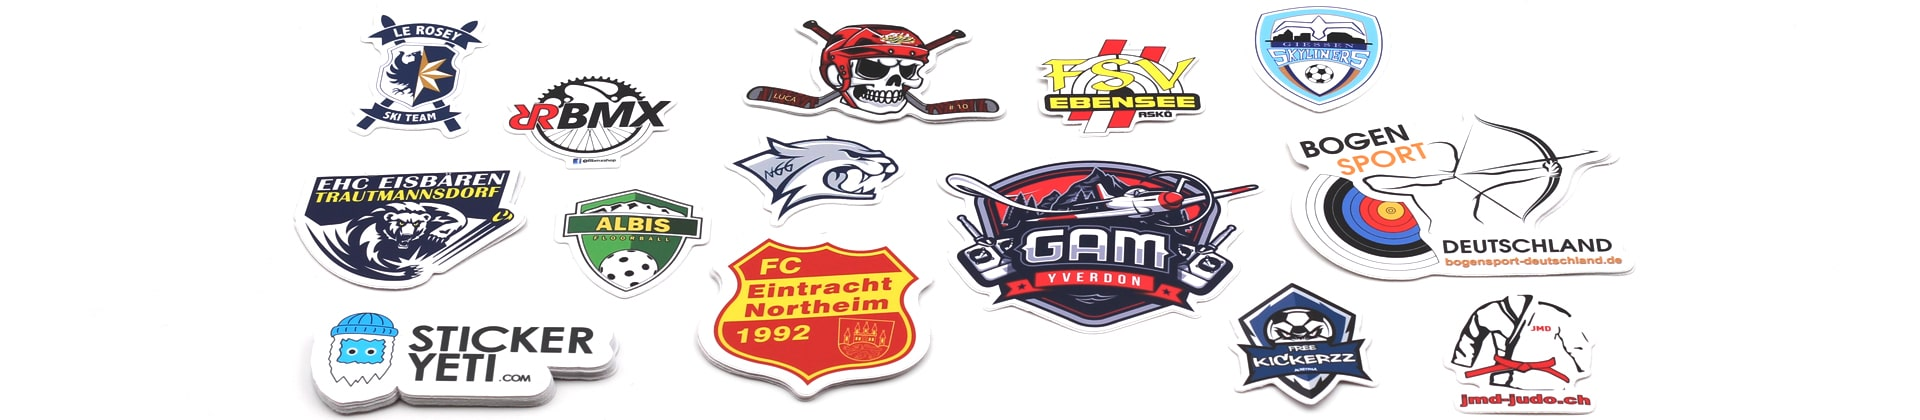 Shop high quality company logo stickers product stickers quickly print online startup stickers